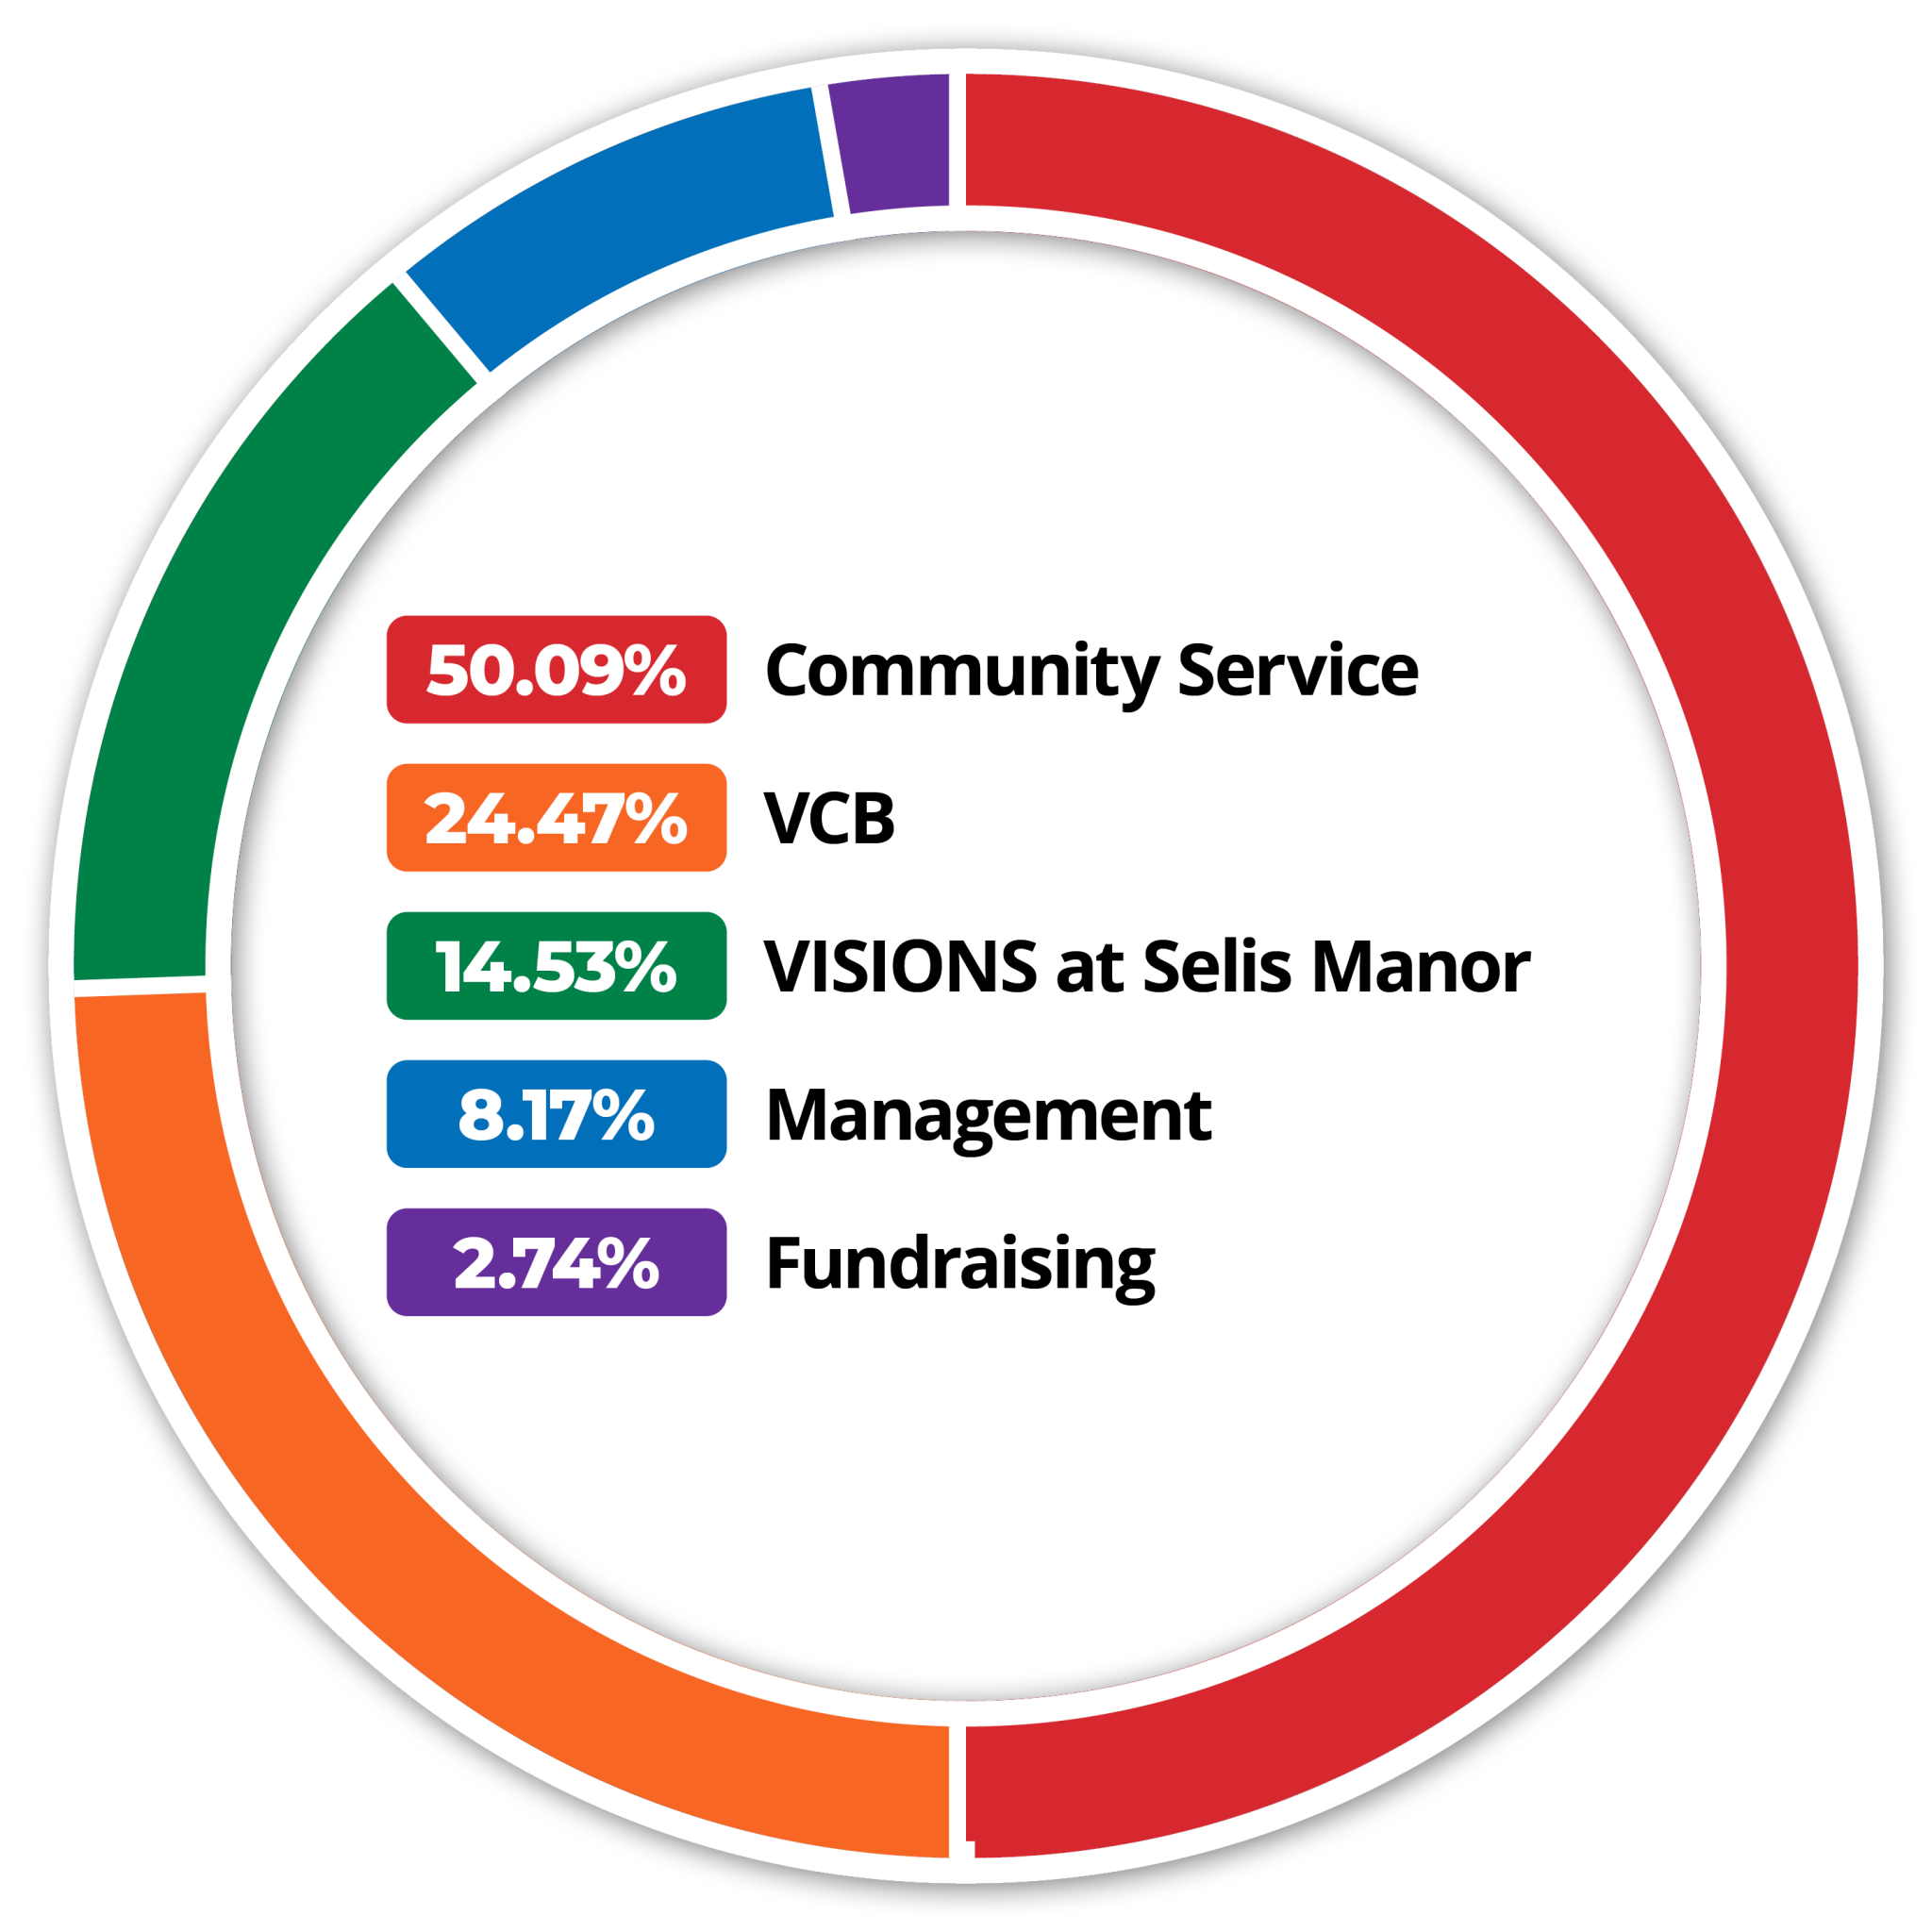 Donut chart representing VISIONS expenses. 50.09%, Red: Community Services. 24.47%, Orange: VISIONS Center on Blindness. 14.53%, Green: VISIONS at Selis Manor. 8.17%, Blue: Management. 2.74%, Purple: Fundraising.